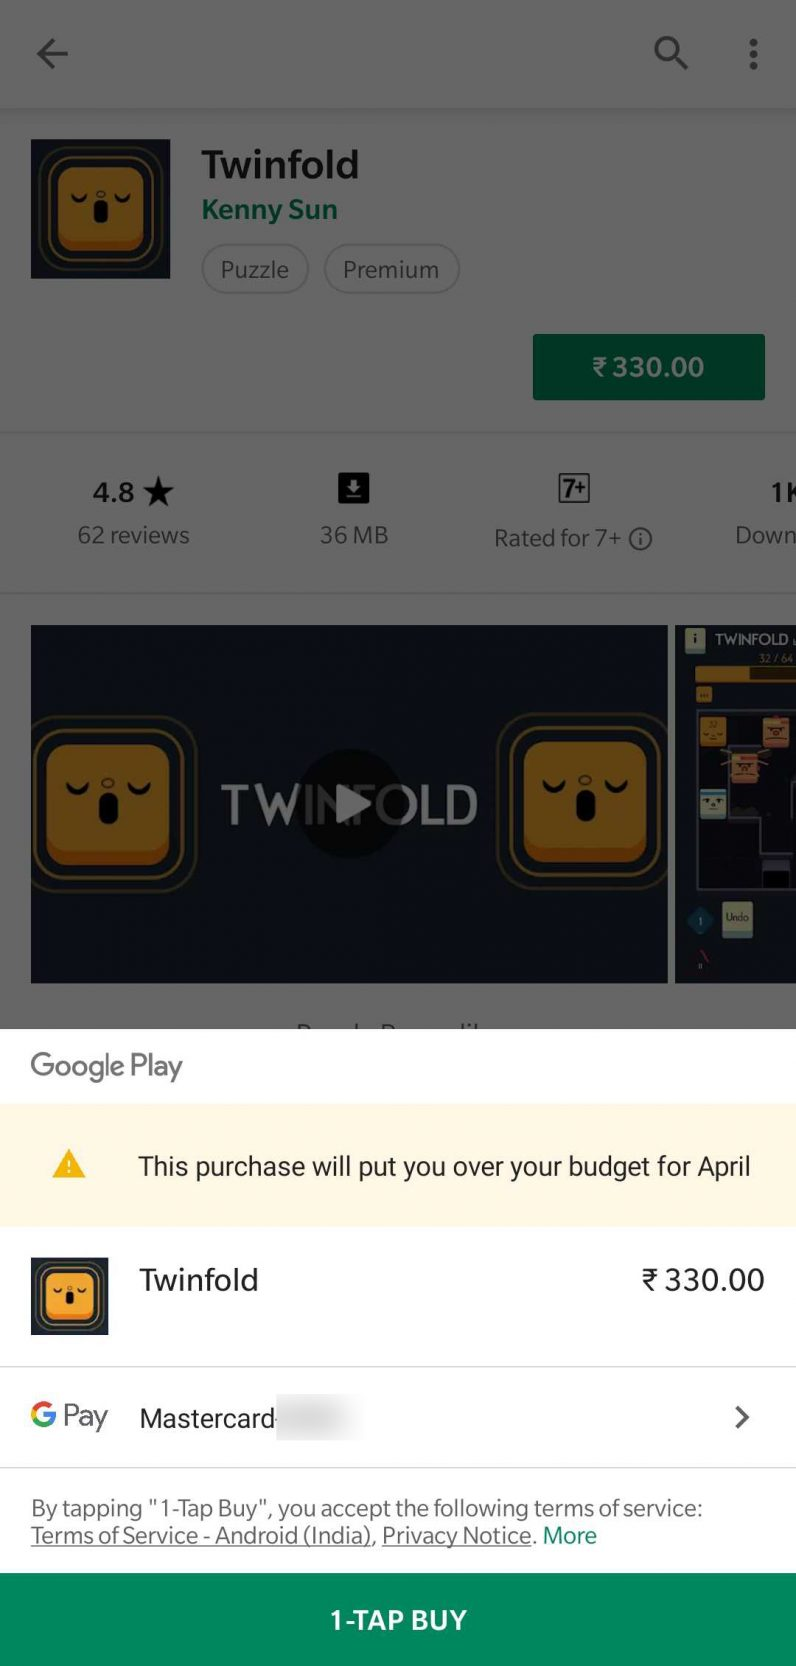 If your purchase exceeds your budget, you'll see a notification like this